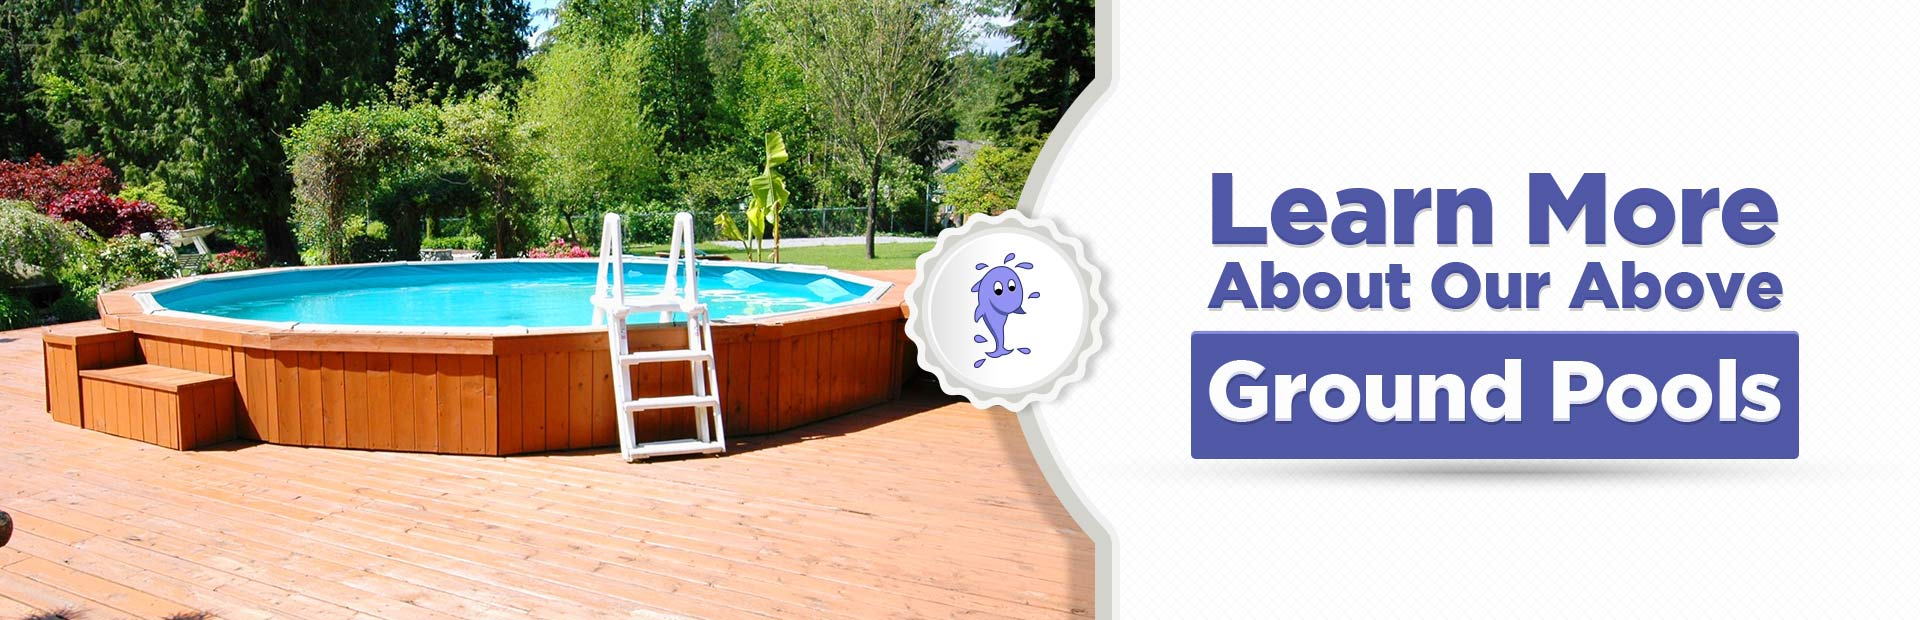 Click here to learn more about our above ground pools.